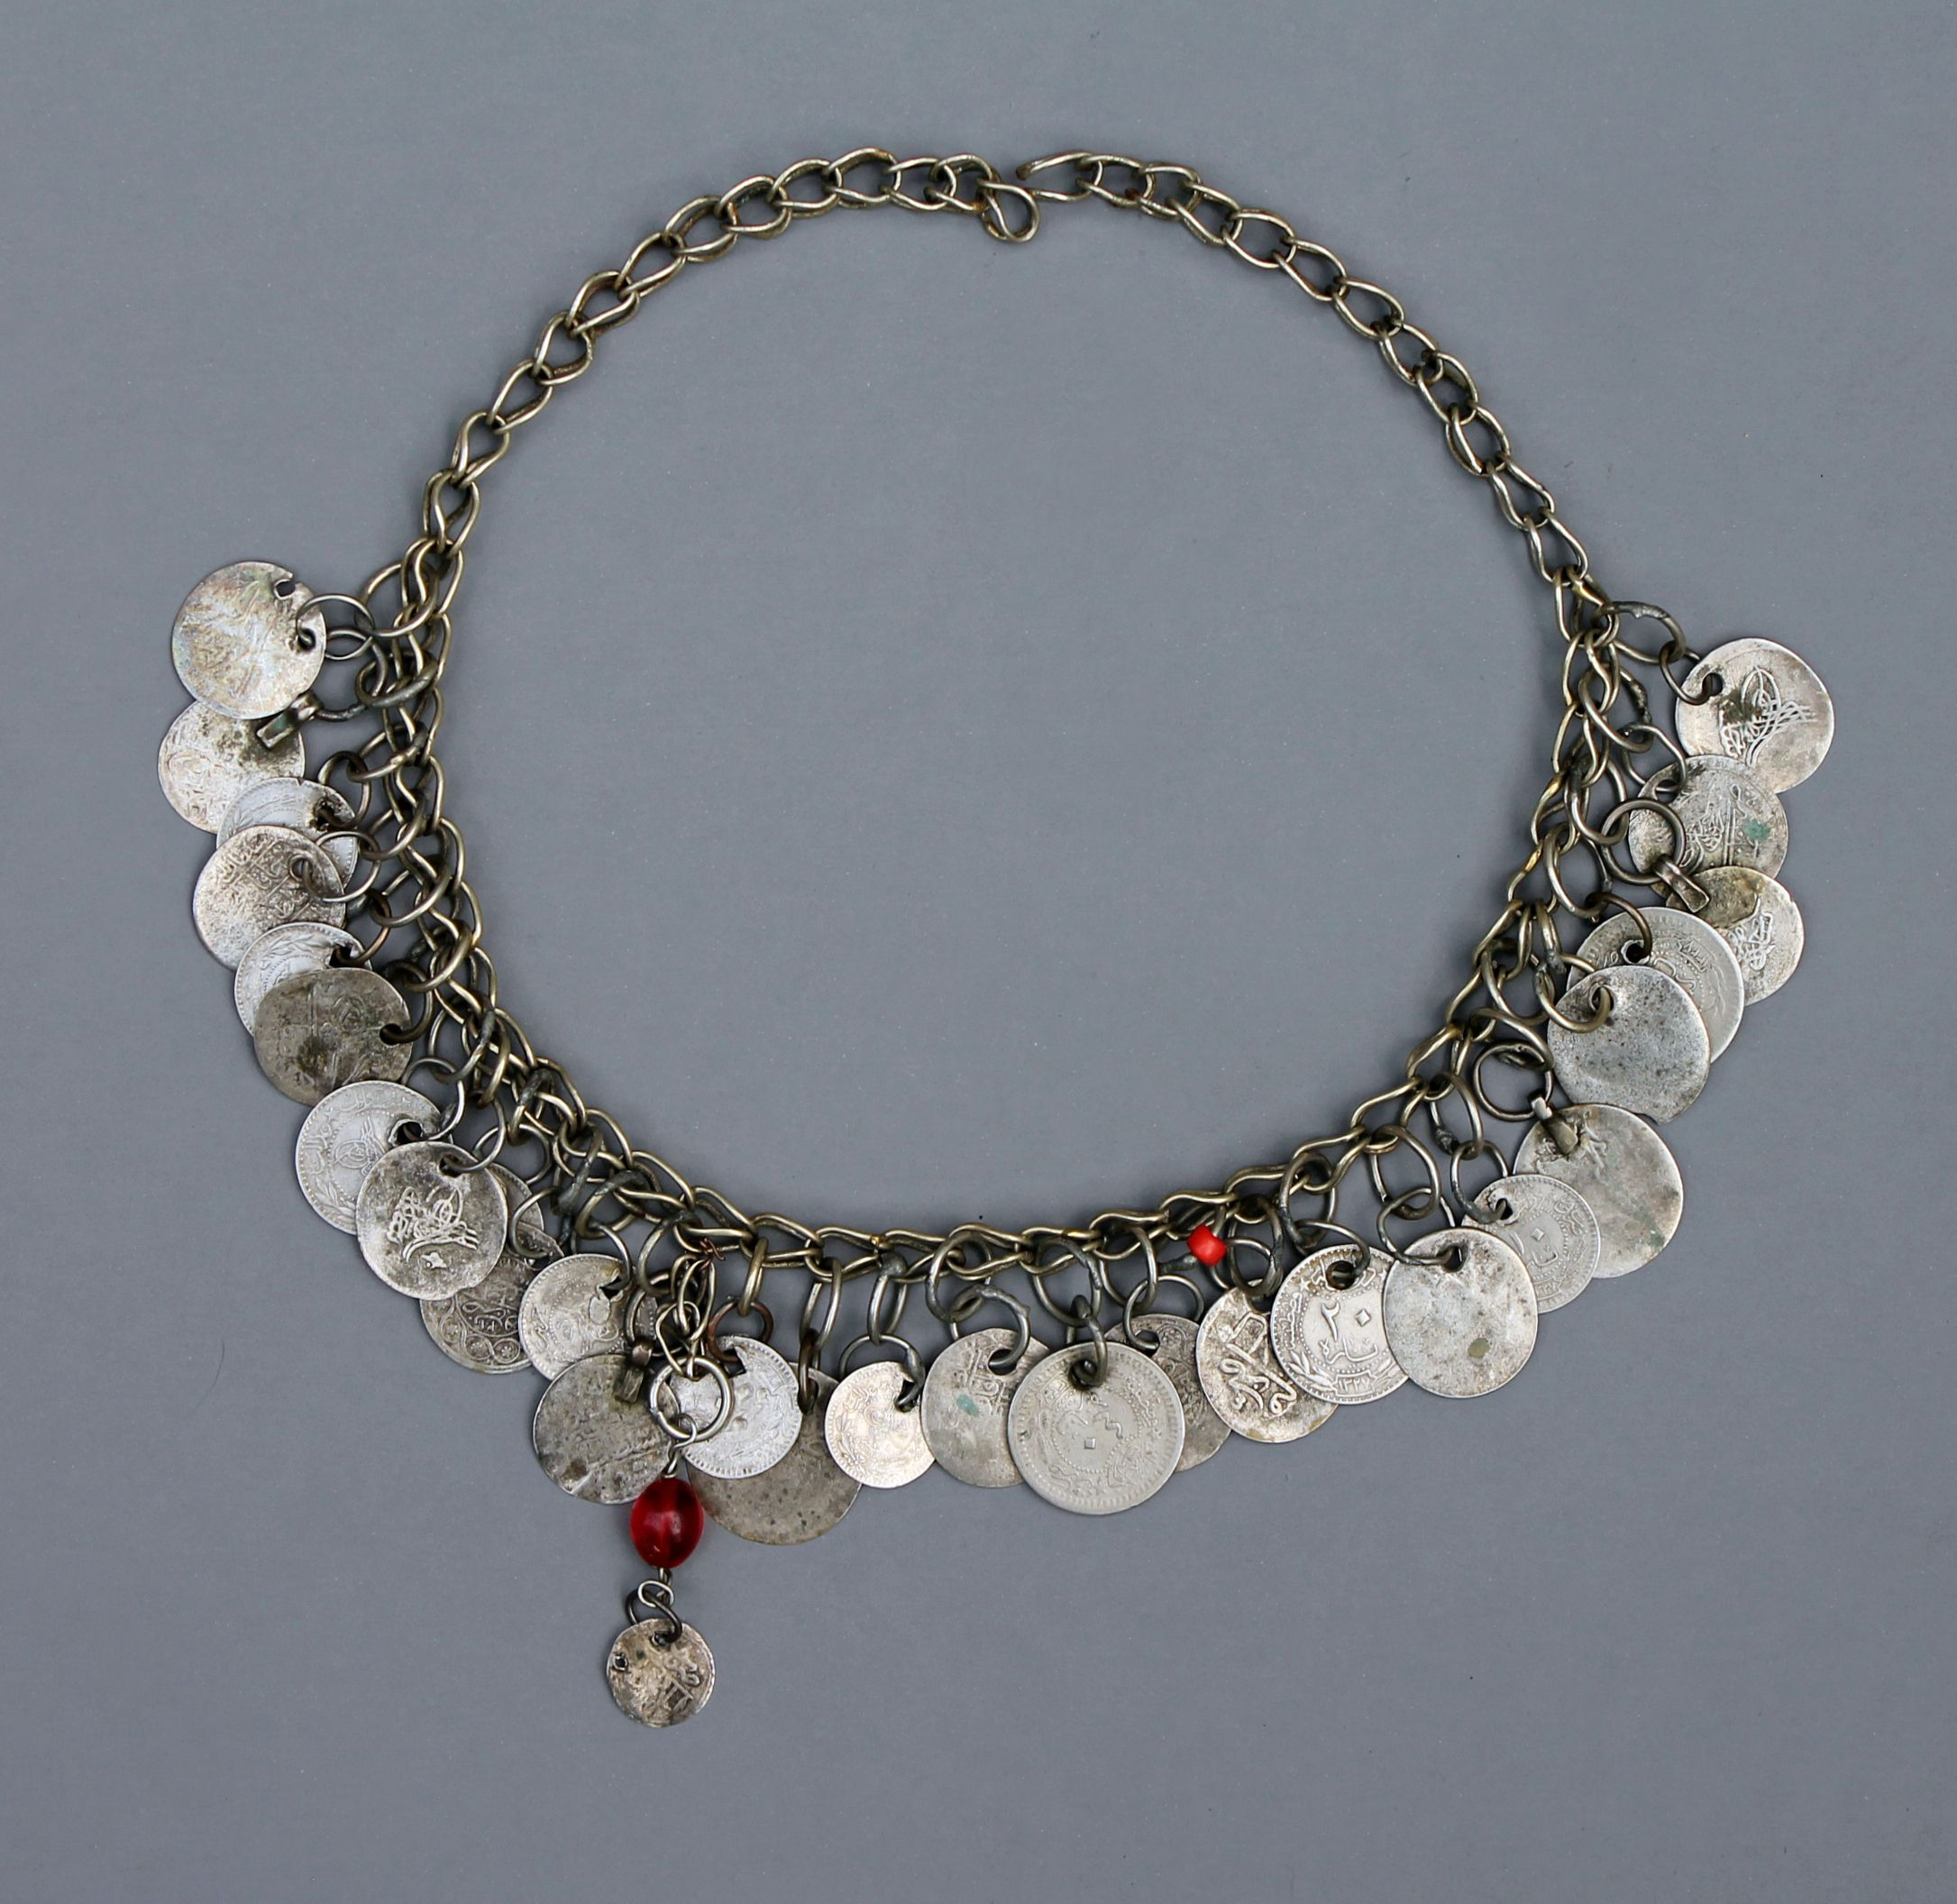 A silver necklace or head ornament with many old coins and a few ...